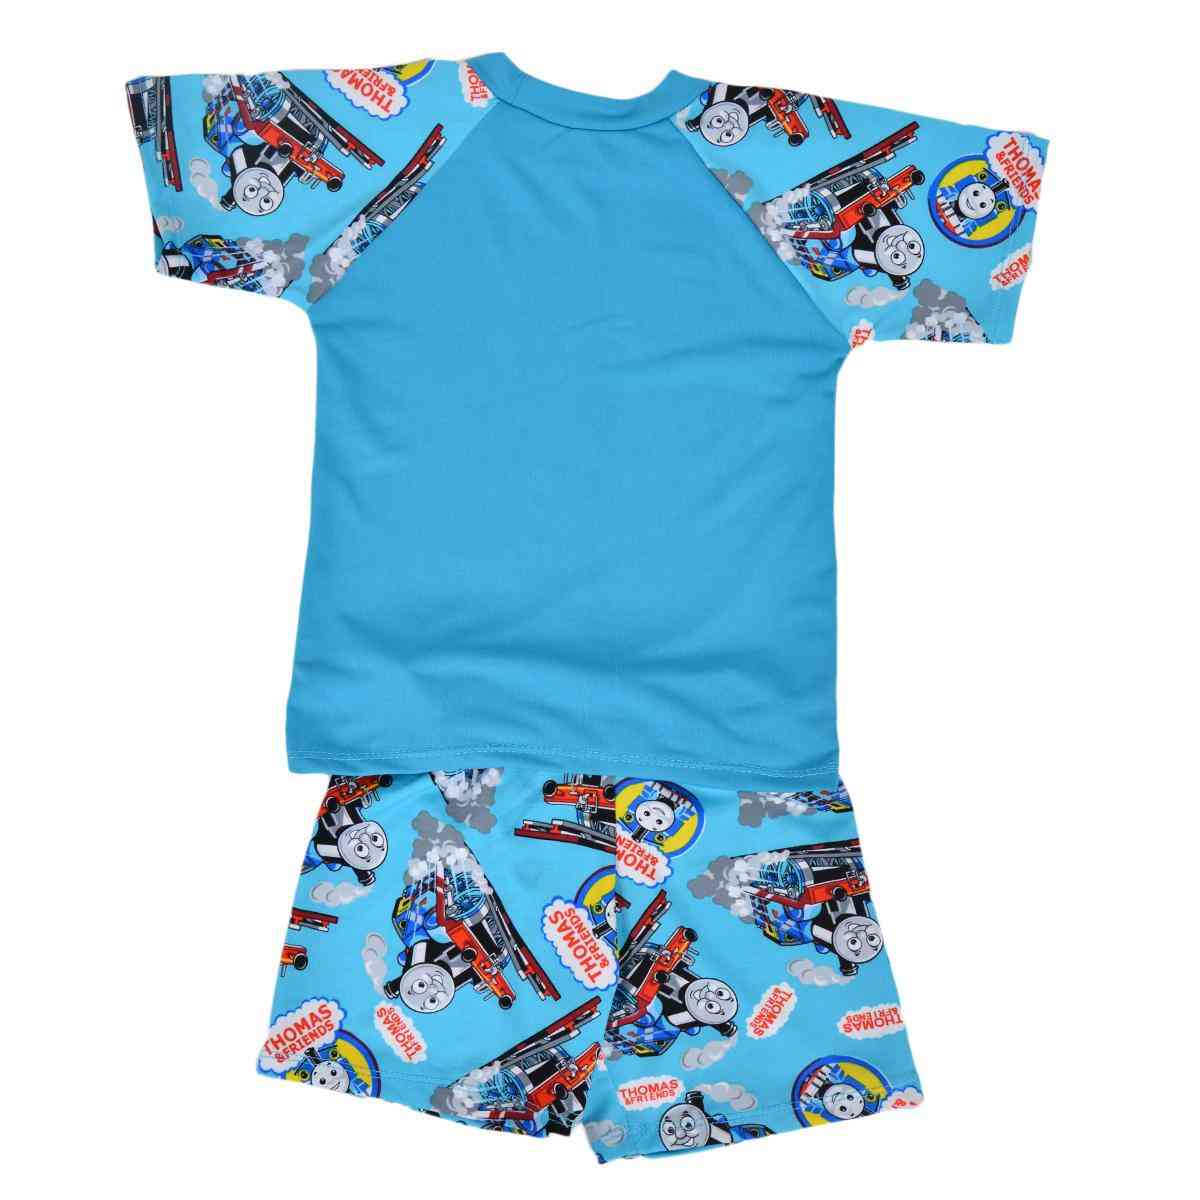 Thomas Train Swimming Suit for Kids - Sky Blue (3 to 4 Years)